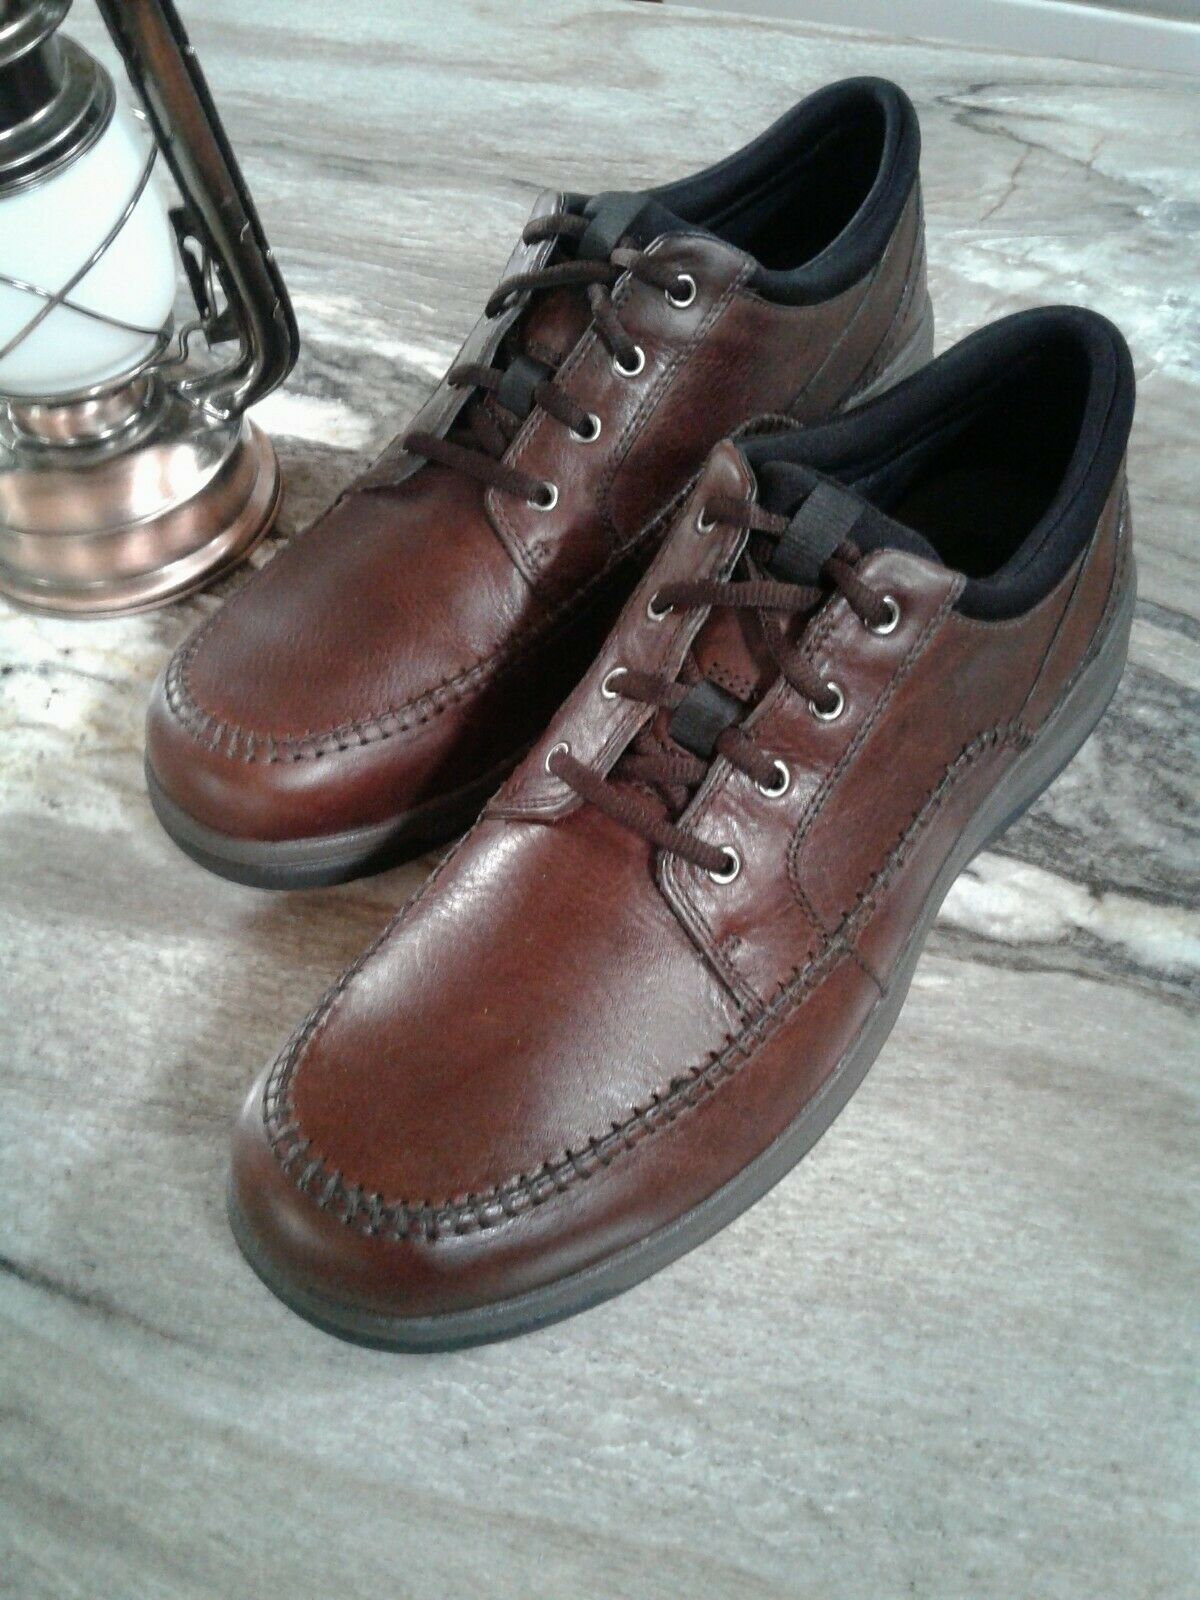 NEW   CLARKS 'Portland 2 Tie' Mens Brown Leather WhipStitched shoes Sz 12M  130